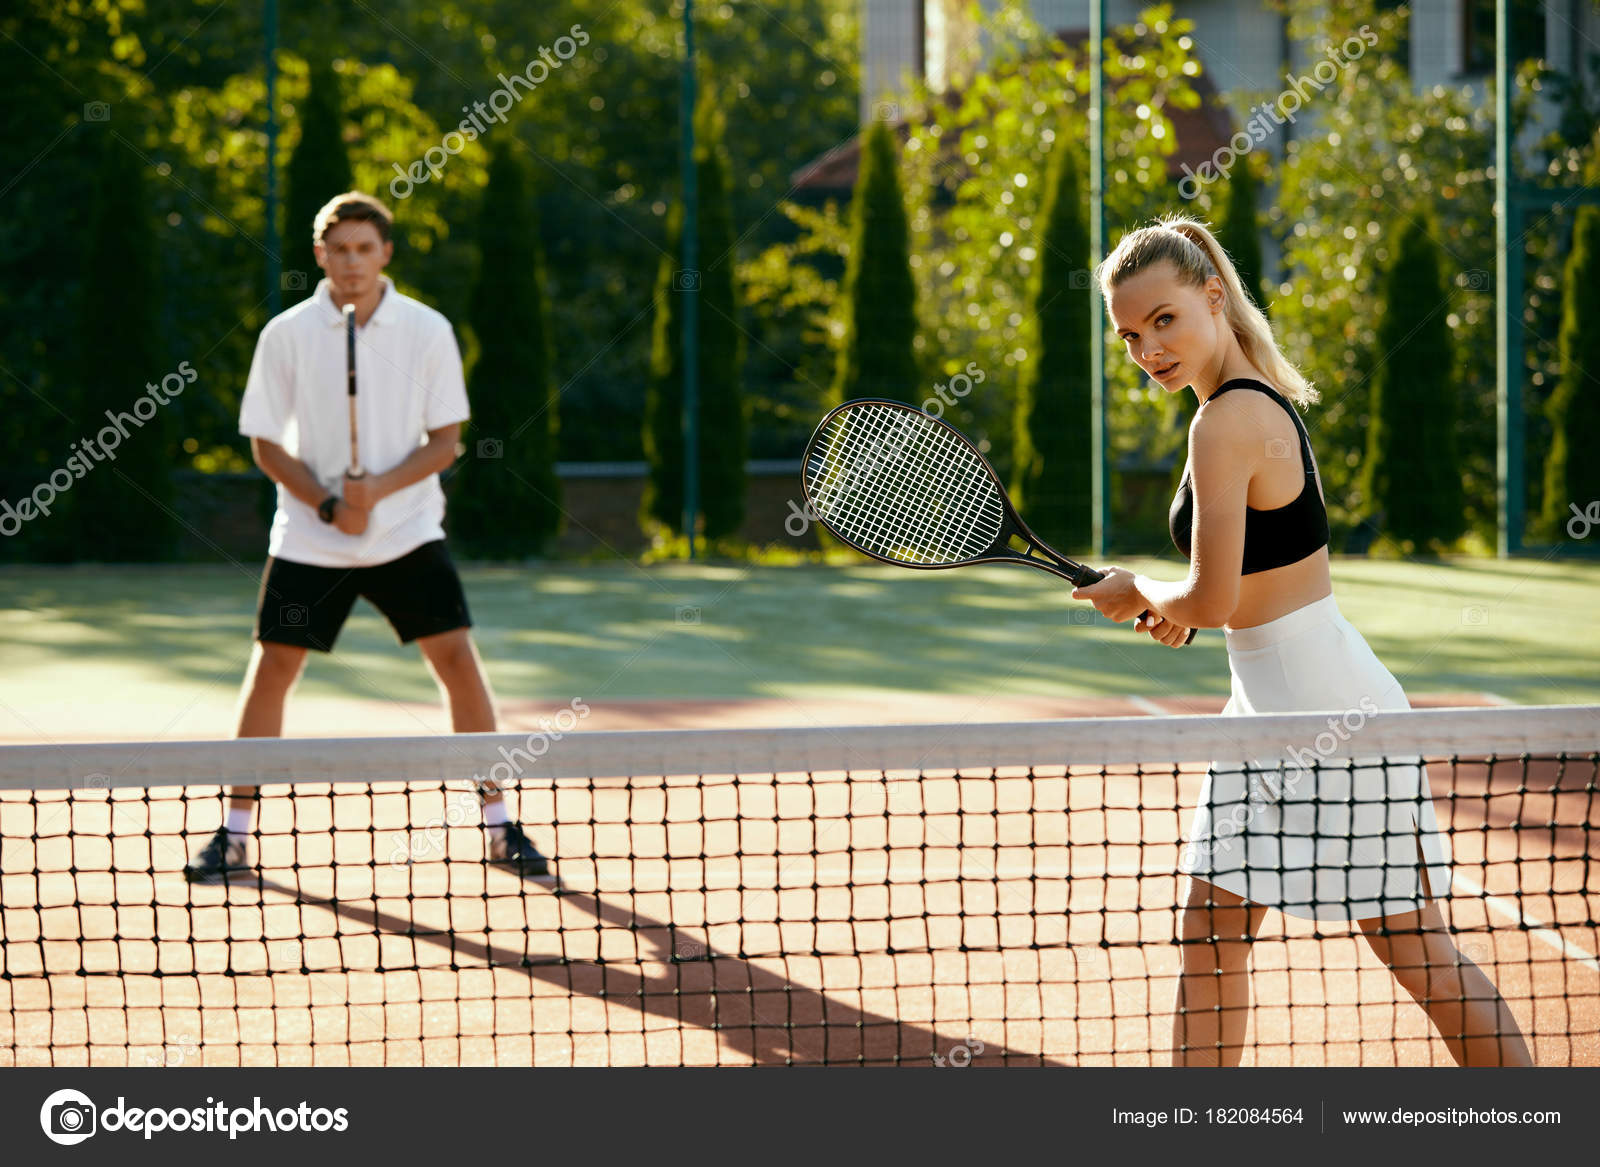 Man And Woman Playing Tennis On Court Stock Photo C Puhhha 182084564